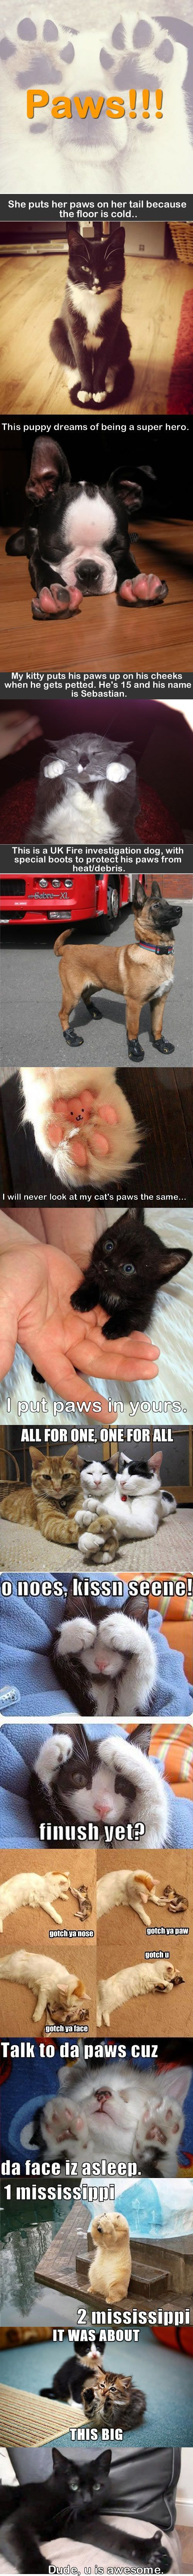 Paws!!!! cute paws of puppies and kittens: